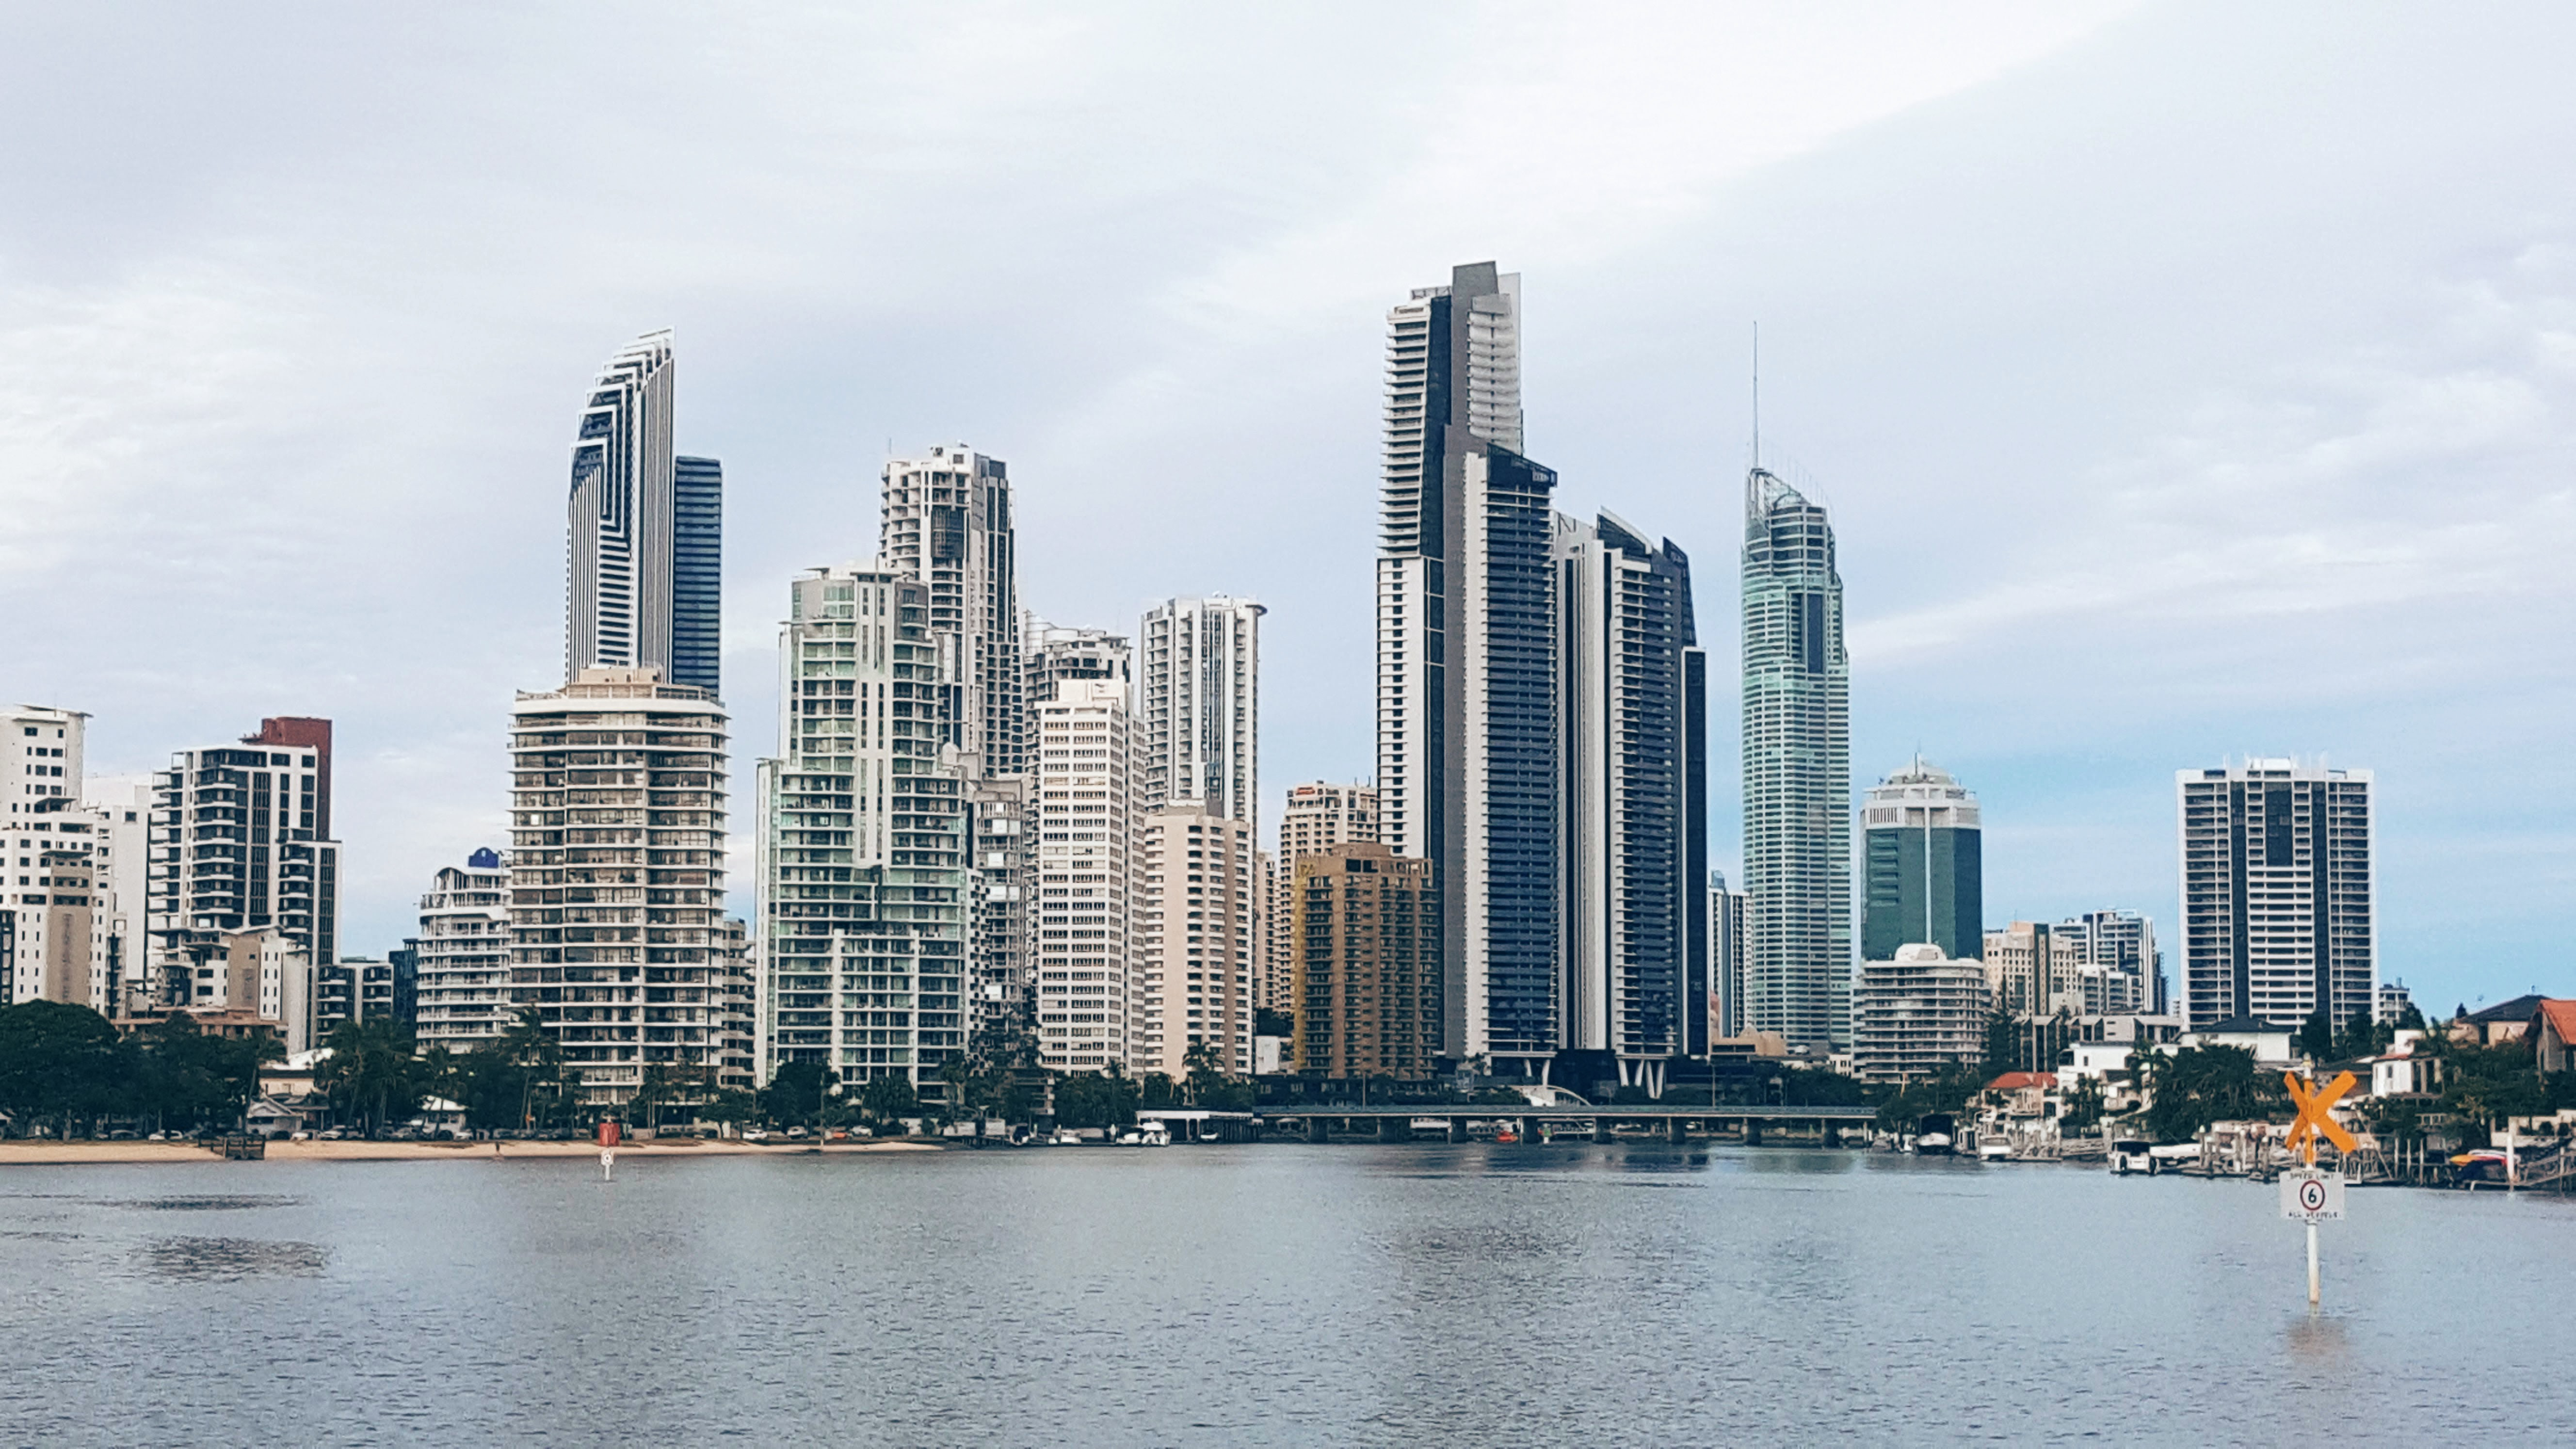 A_closer_view_of_the_GoldCoast_skyscrapers